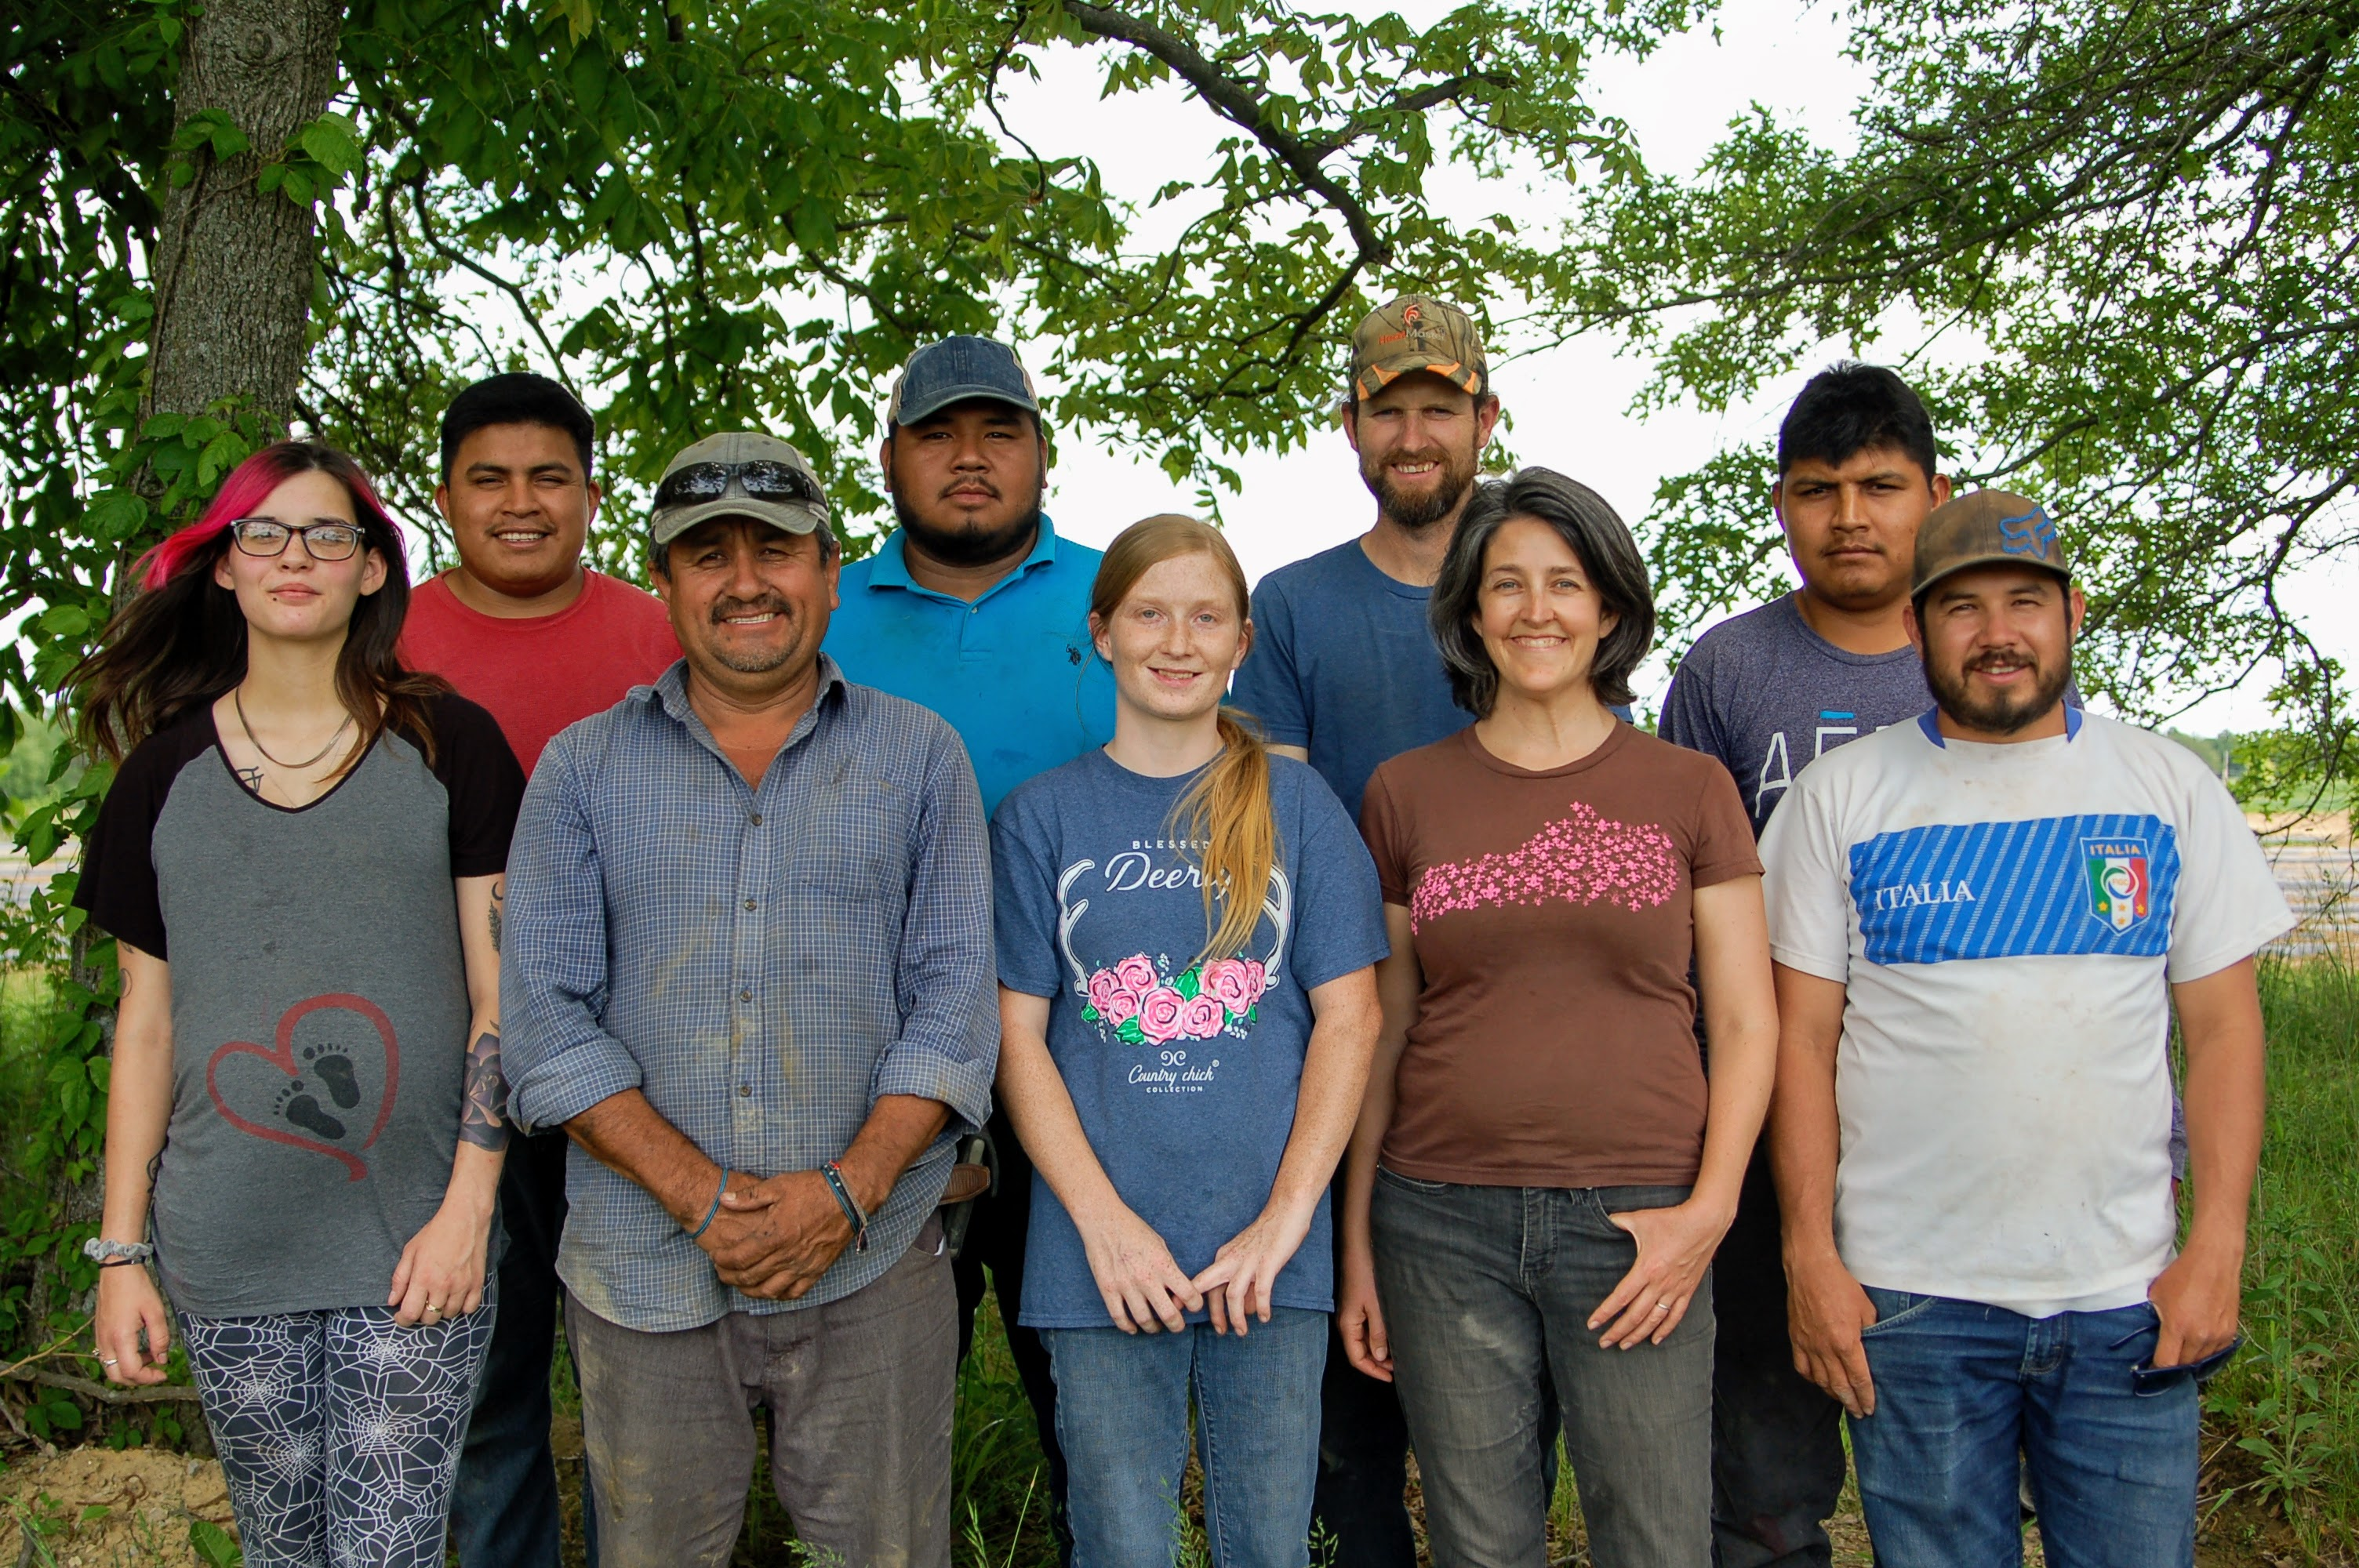 Team photo of Barr Farms farmers who work together to bring great produce and meats for those interested in local farms near me, organic farms near me and local meat farms near me.